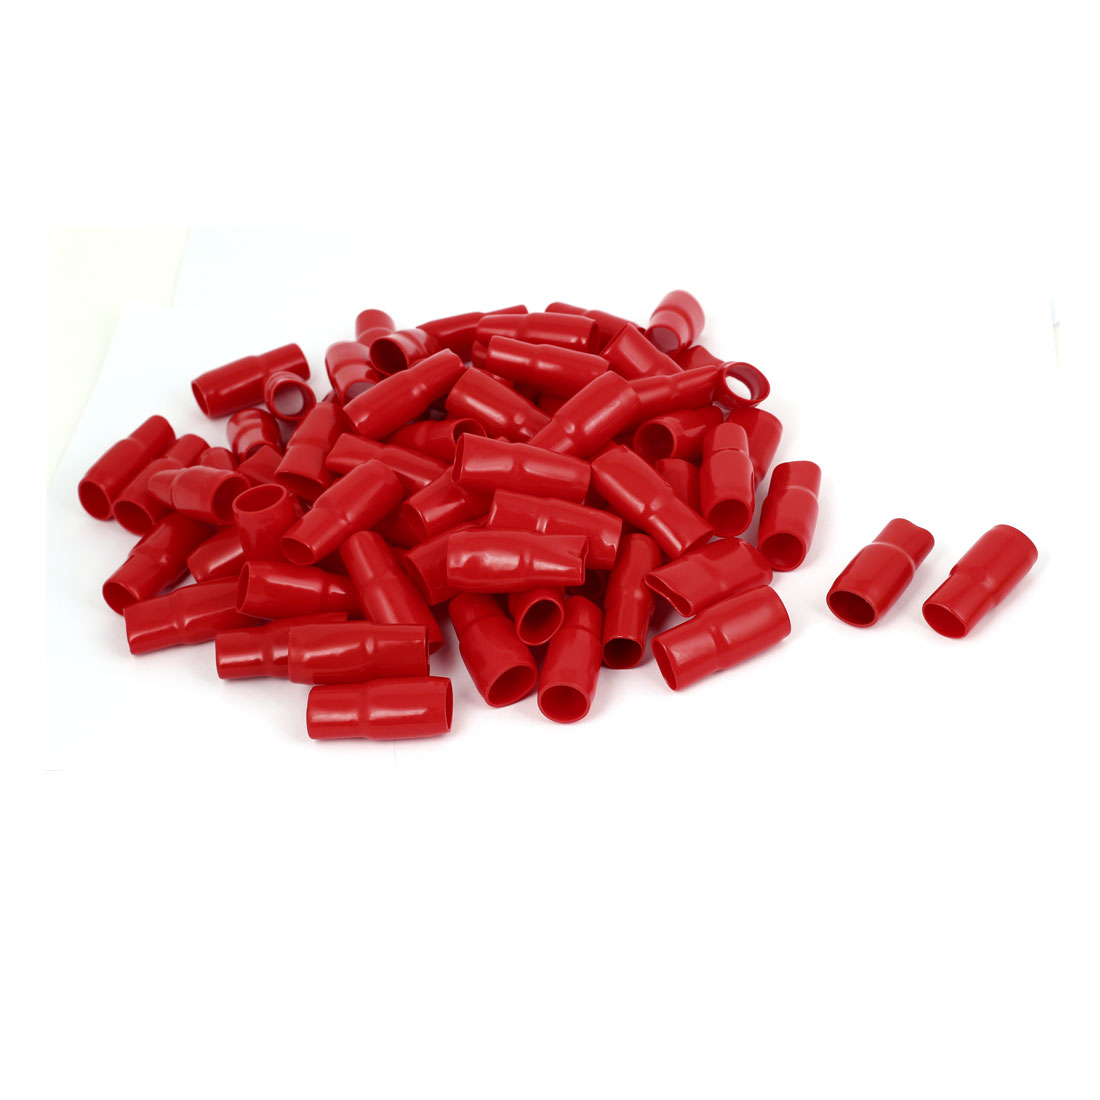 100pcs Red PVC Straight Type Terminal Wire Sleeve Protective Insulated Covers